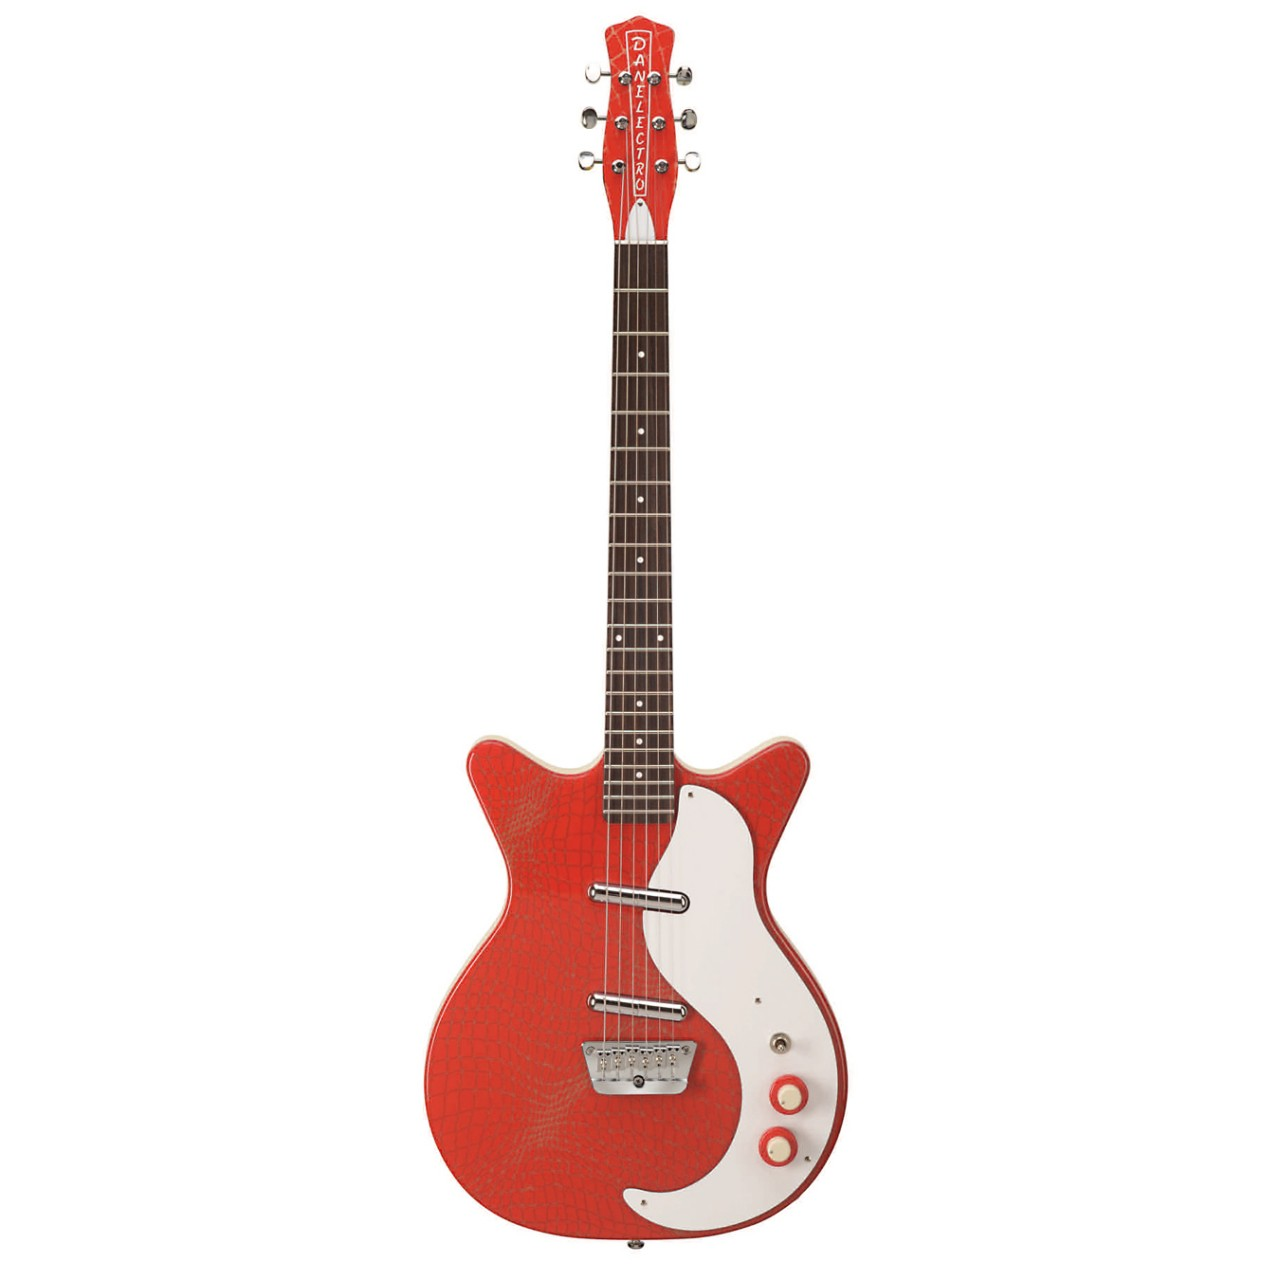 Danelectro 59 Red Alligator Double Cutaway Electric